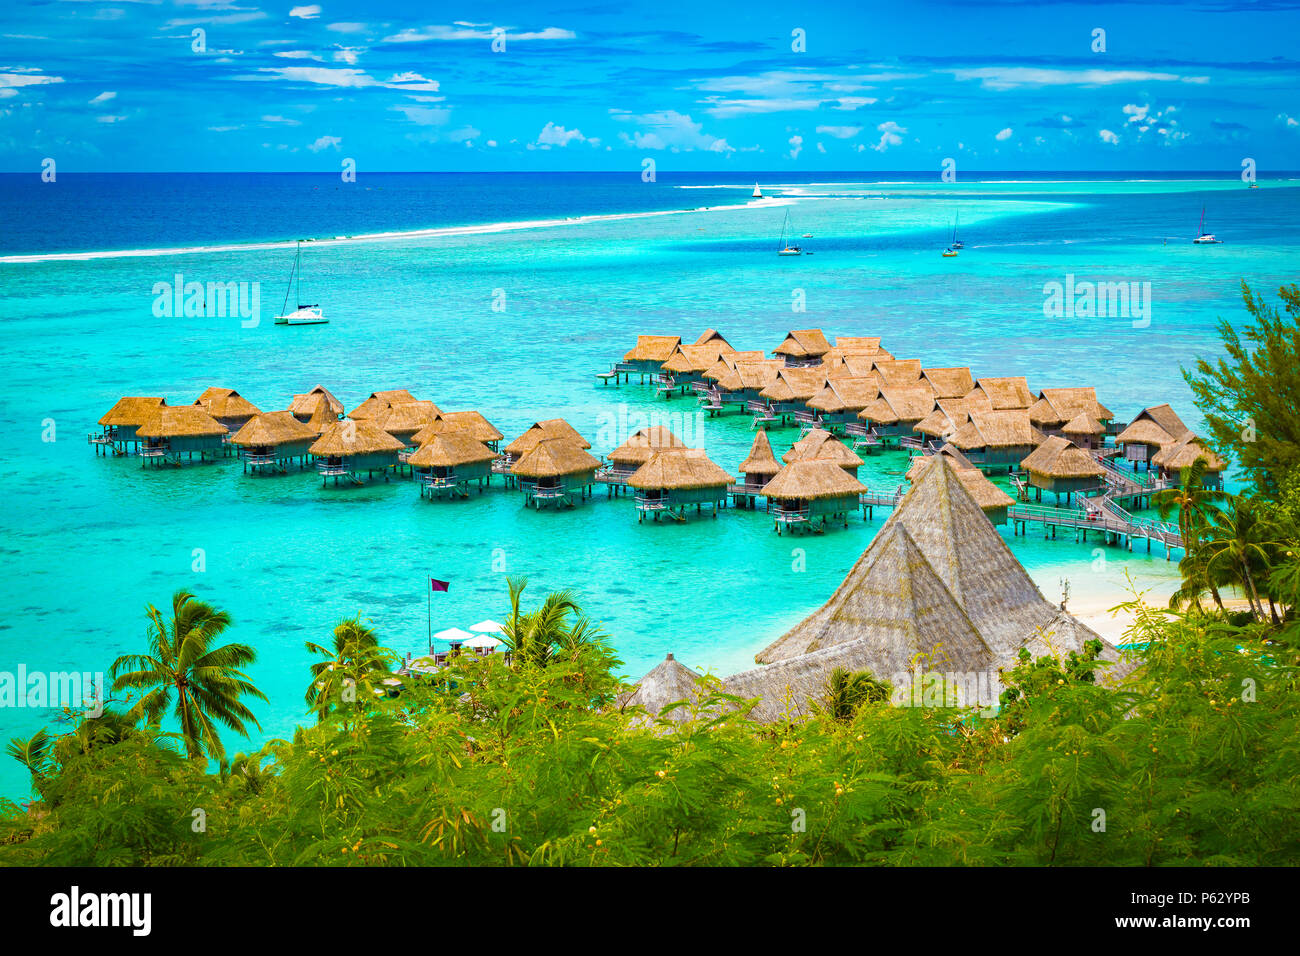 Aerial view of overwater bungalow luxury resort in turquoise lagoon water of Moorea, French Polynesia. - Stock Image